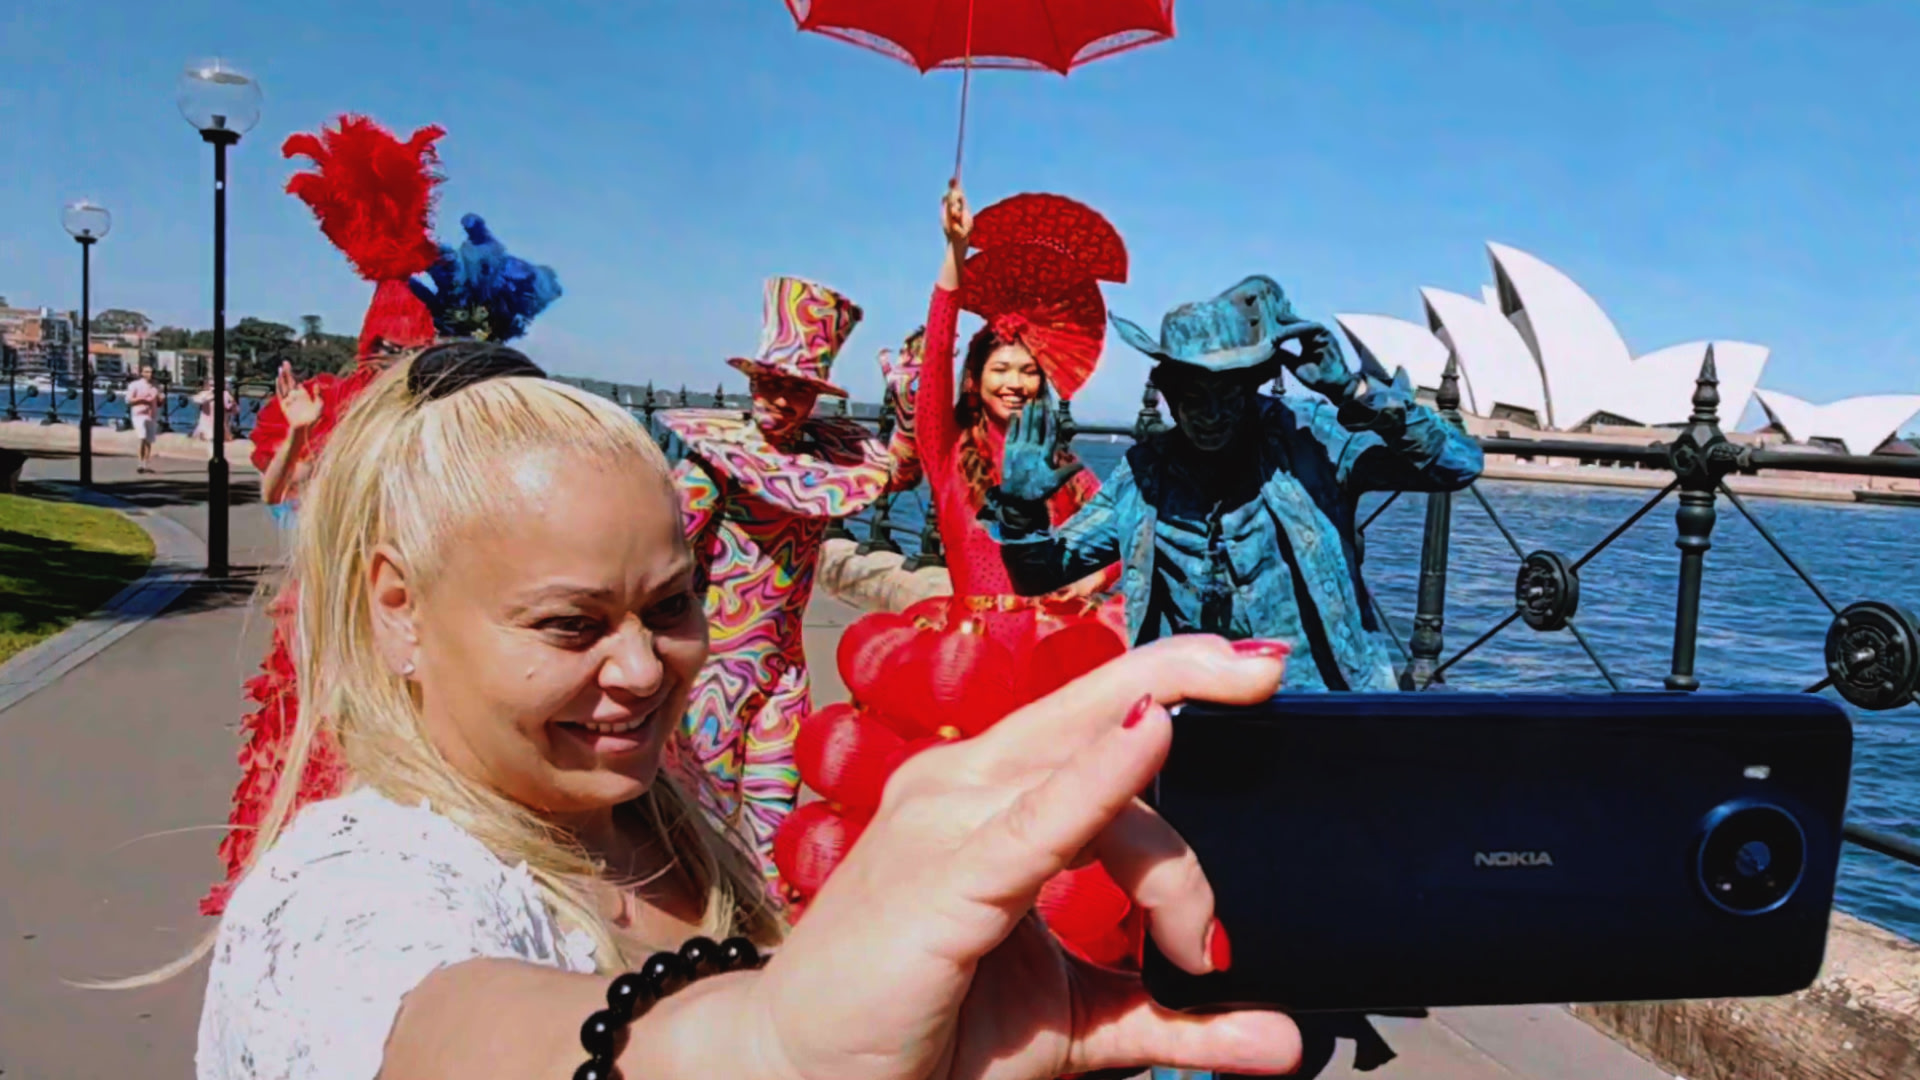 A woman taking a selfie with a Nokia device at a festival in Syndey.